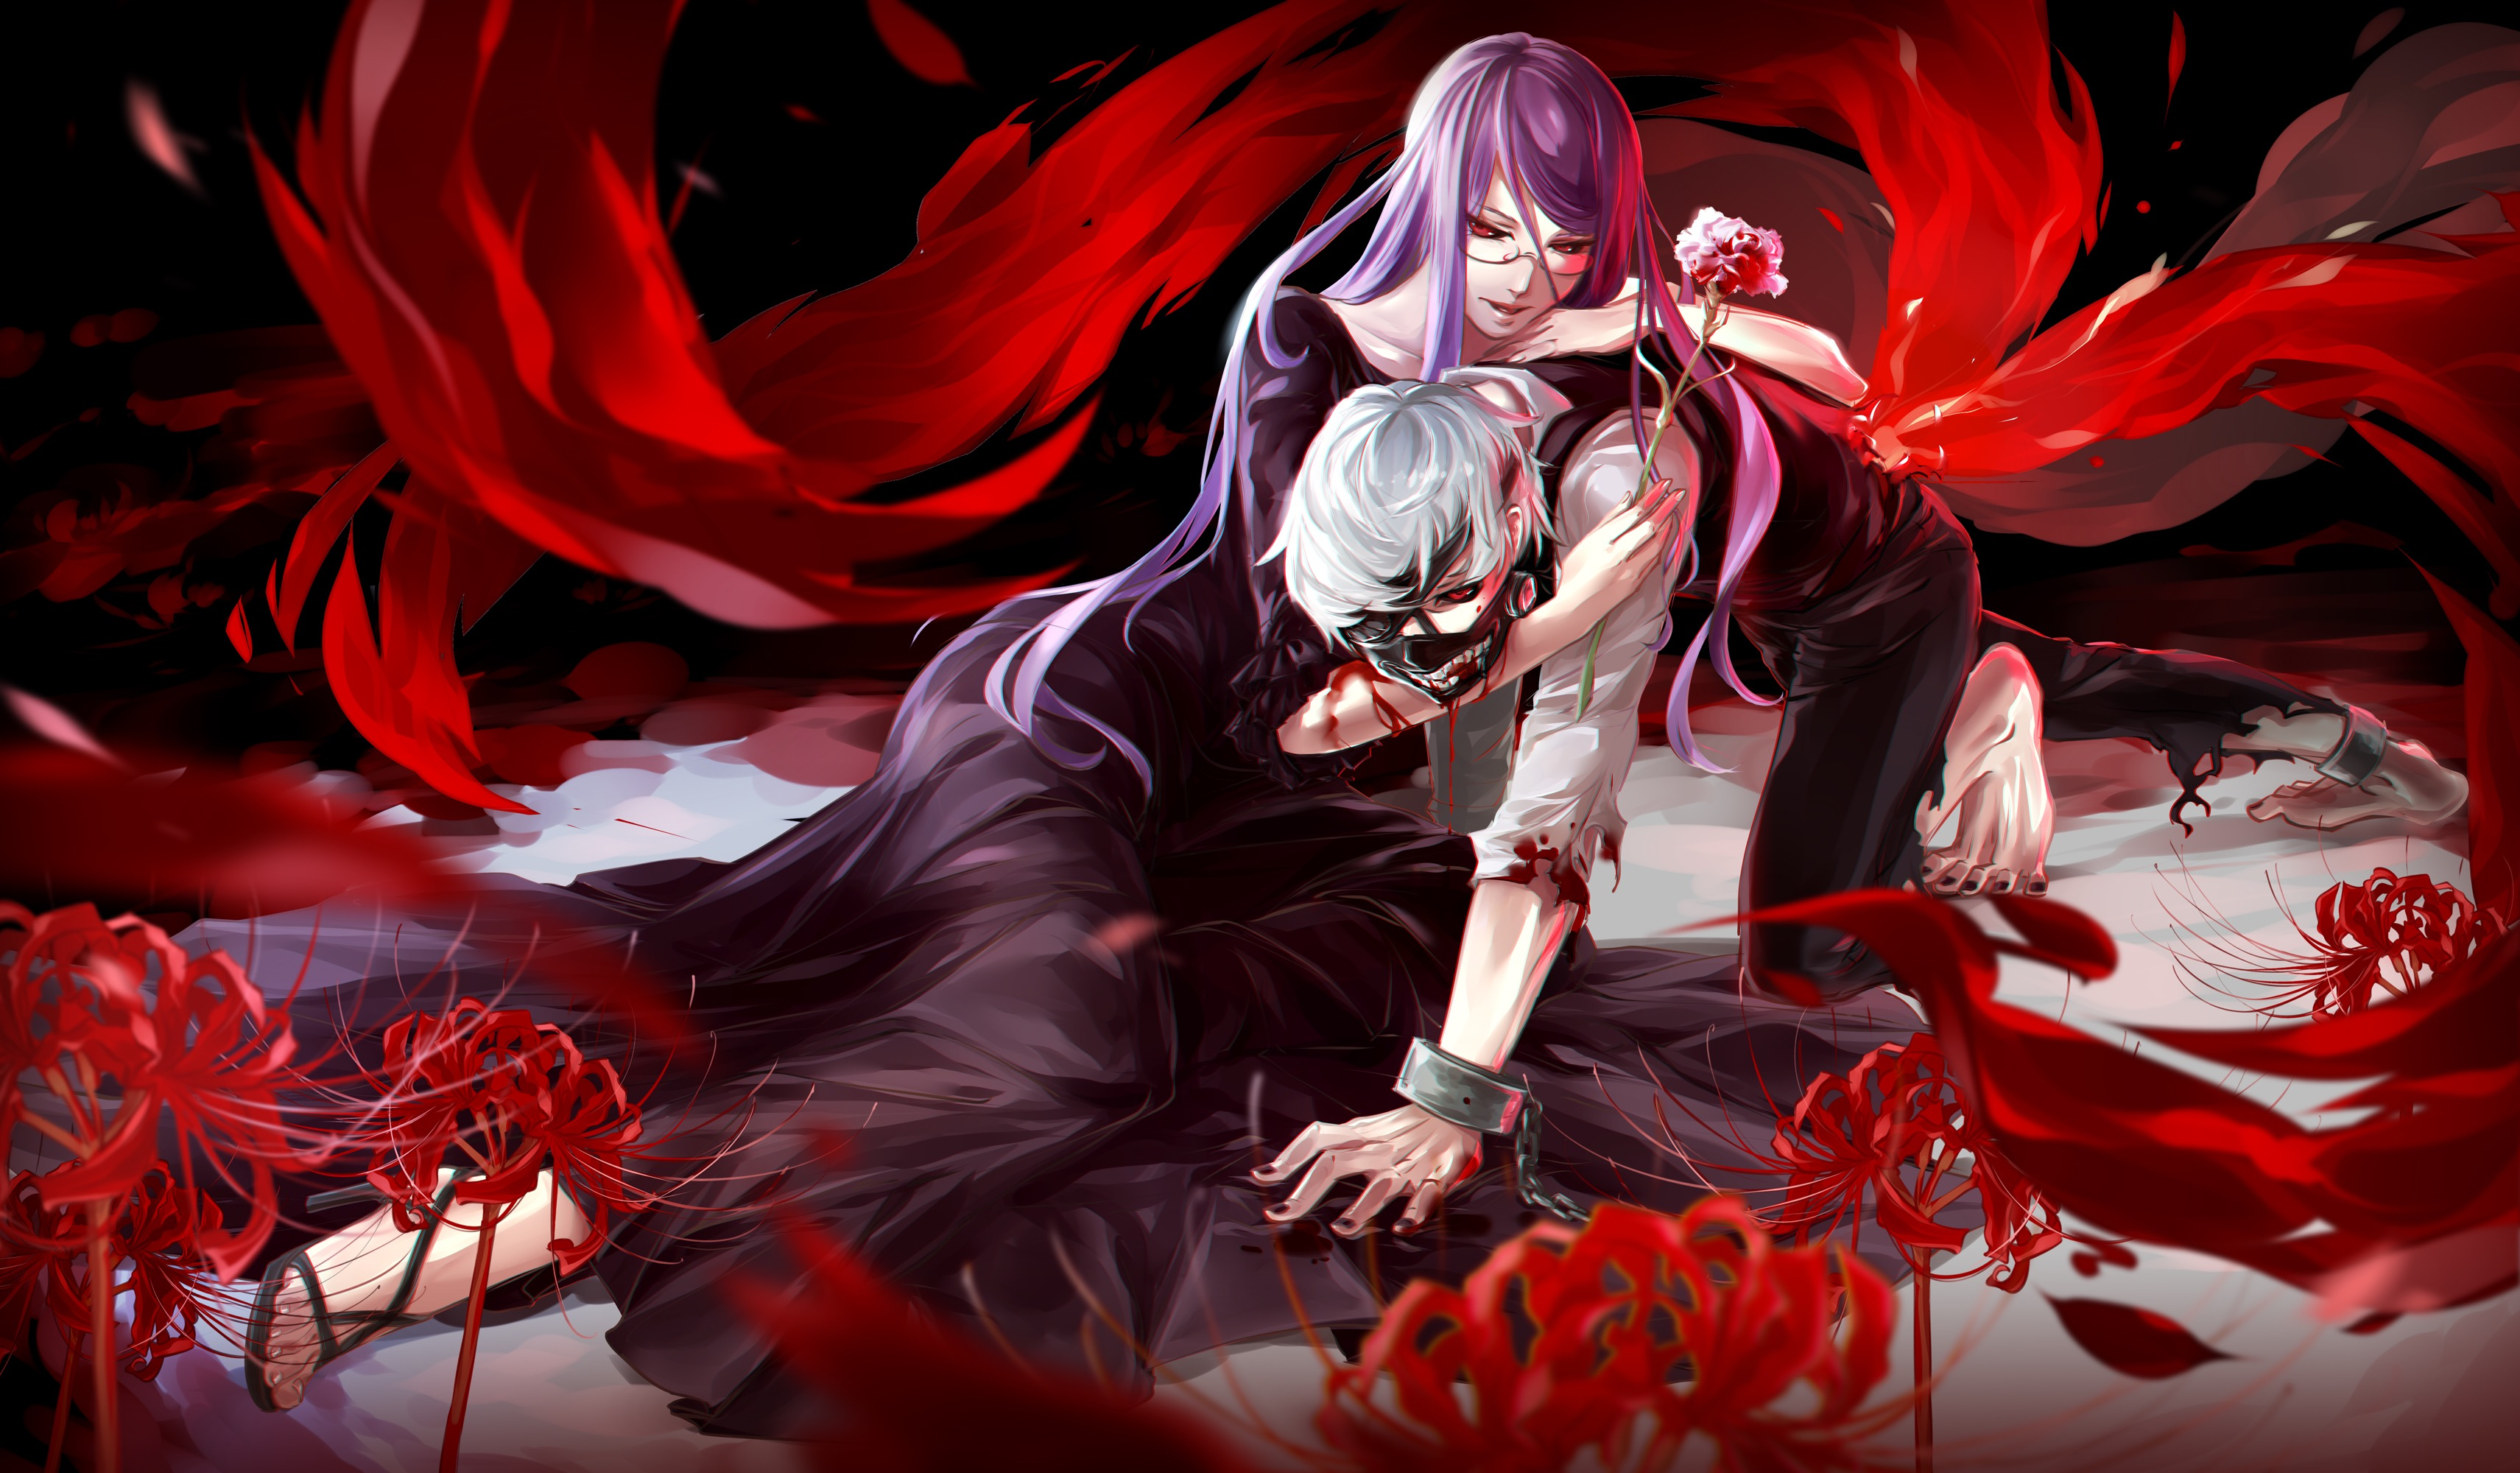 49 Tokyo Ghoul Rize Wallpaper On Wallpapersafari